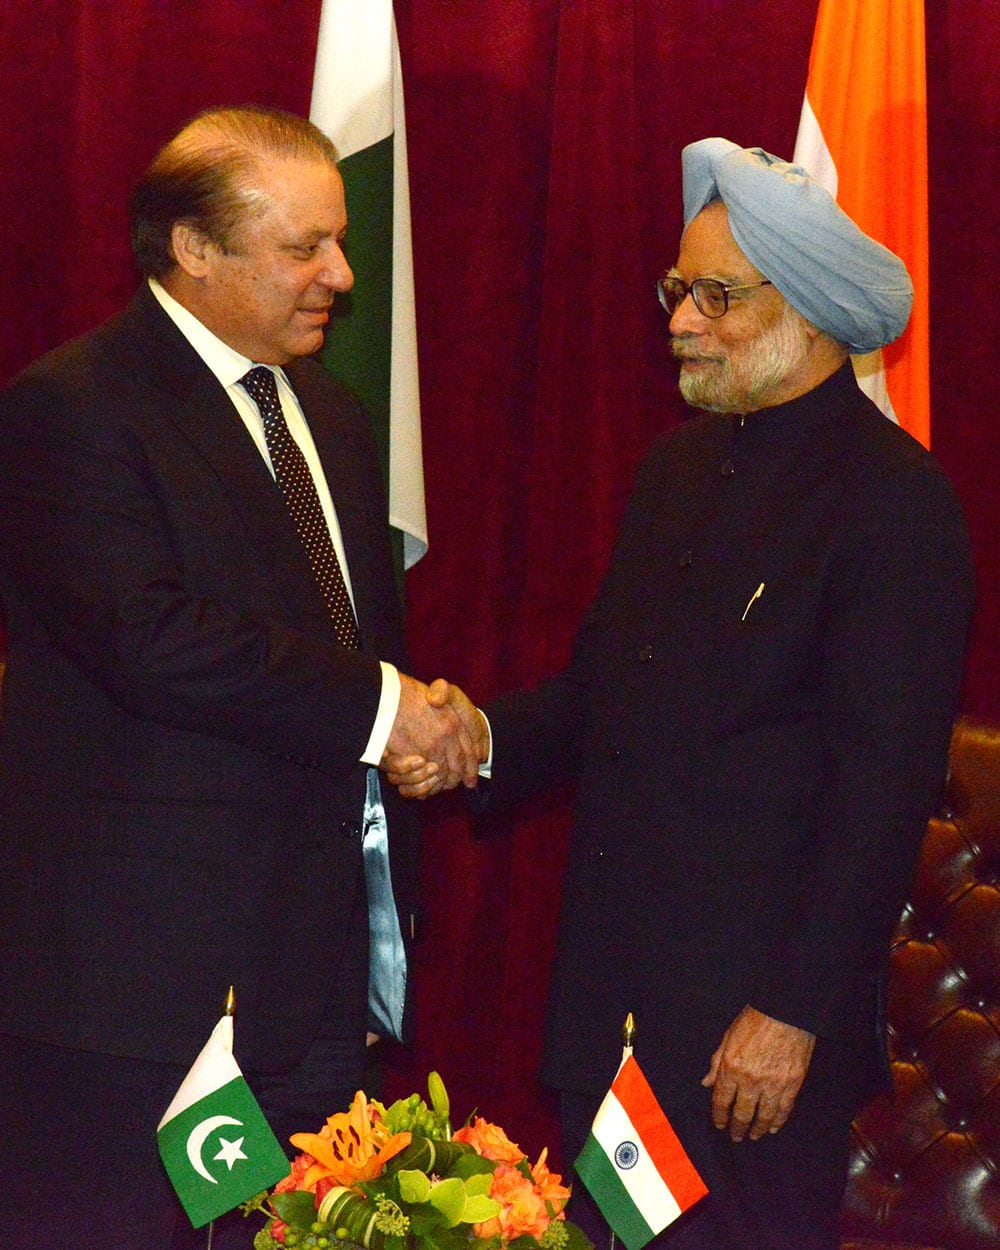 Pakistan PM Nawaz Sharif and Indian PM Manmohan Singh during a meeting in New York.